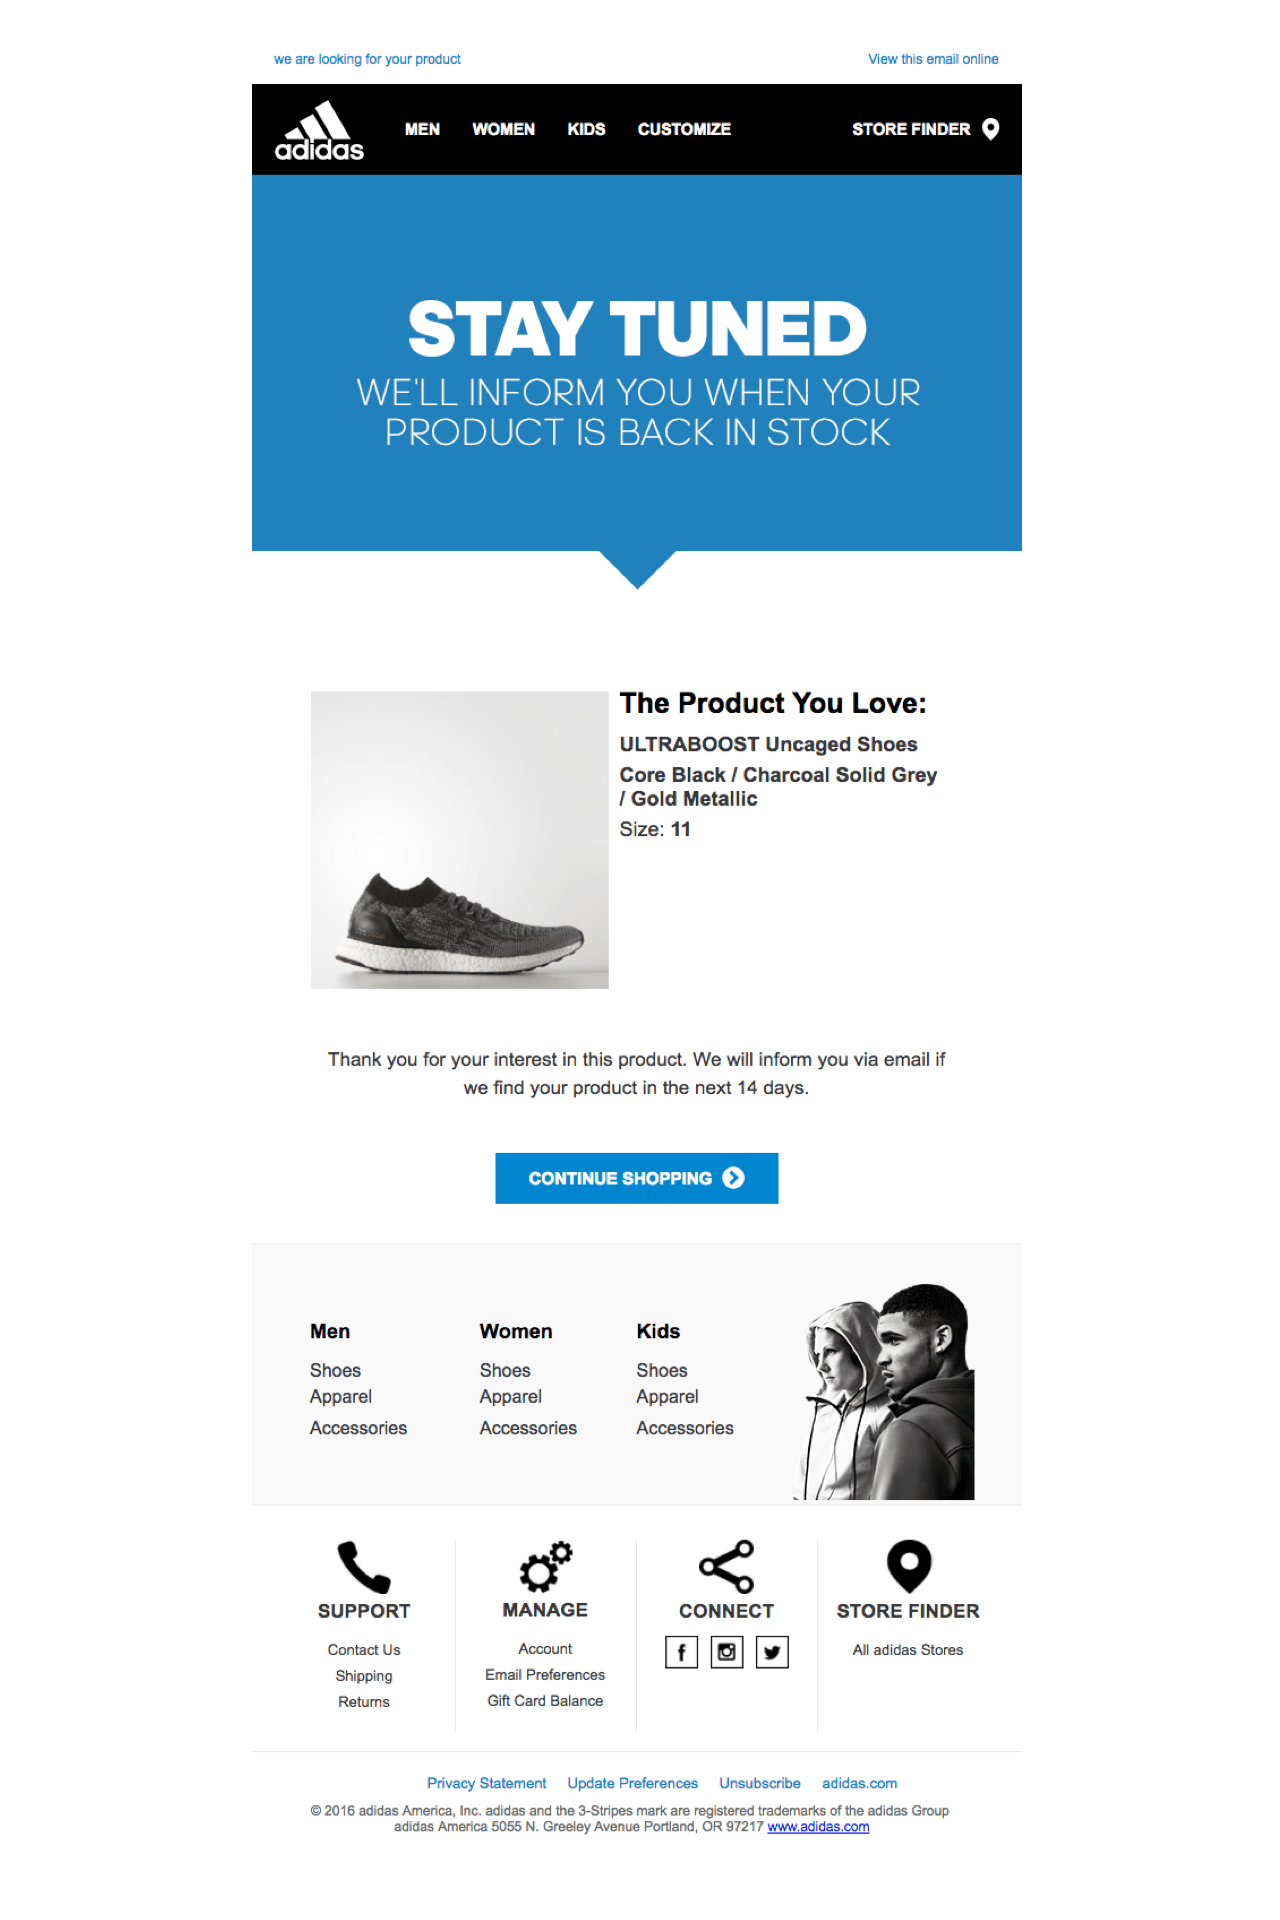 Adidas allows customers to request the back-in-stock item status